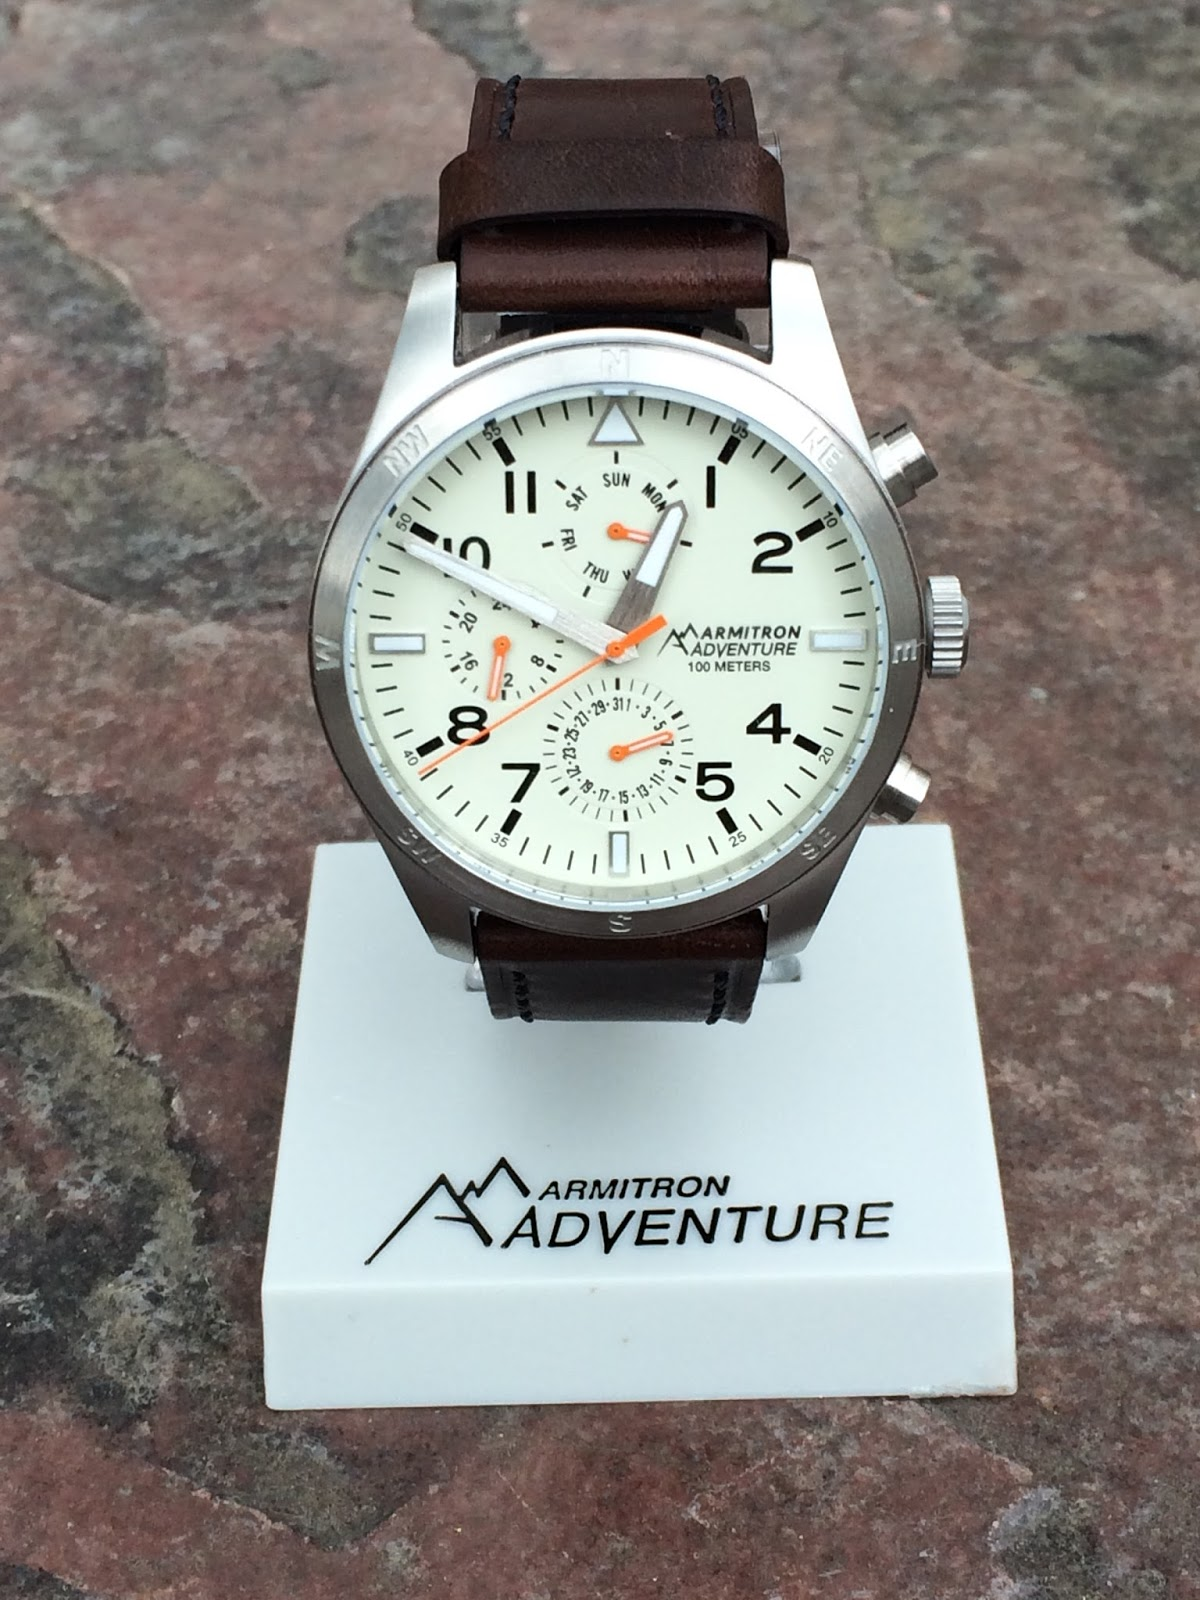 e98761292 This watch is a great accessory for whatever adventure arises out of your  day. I appreciate that it is professional enough to wear at work with a  suit; ...